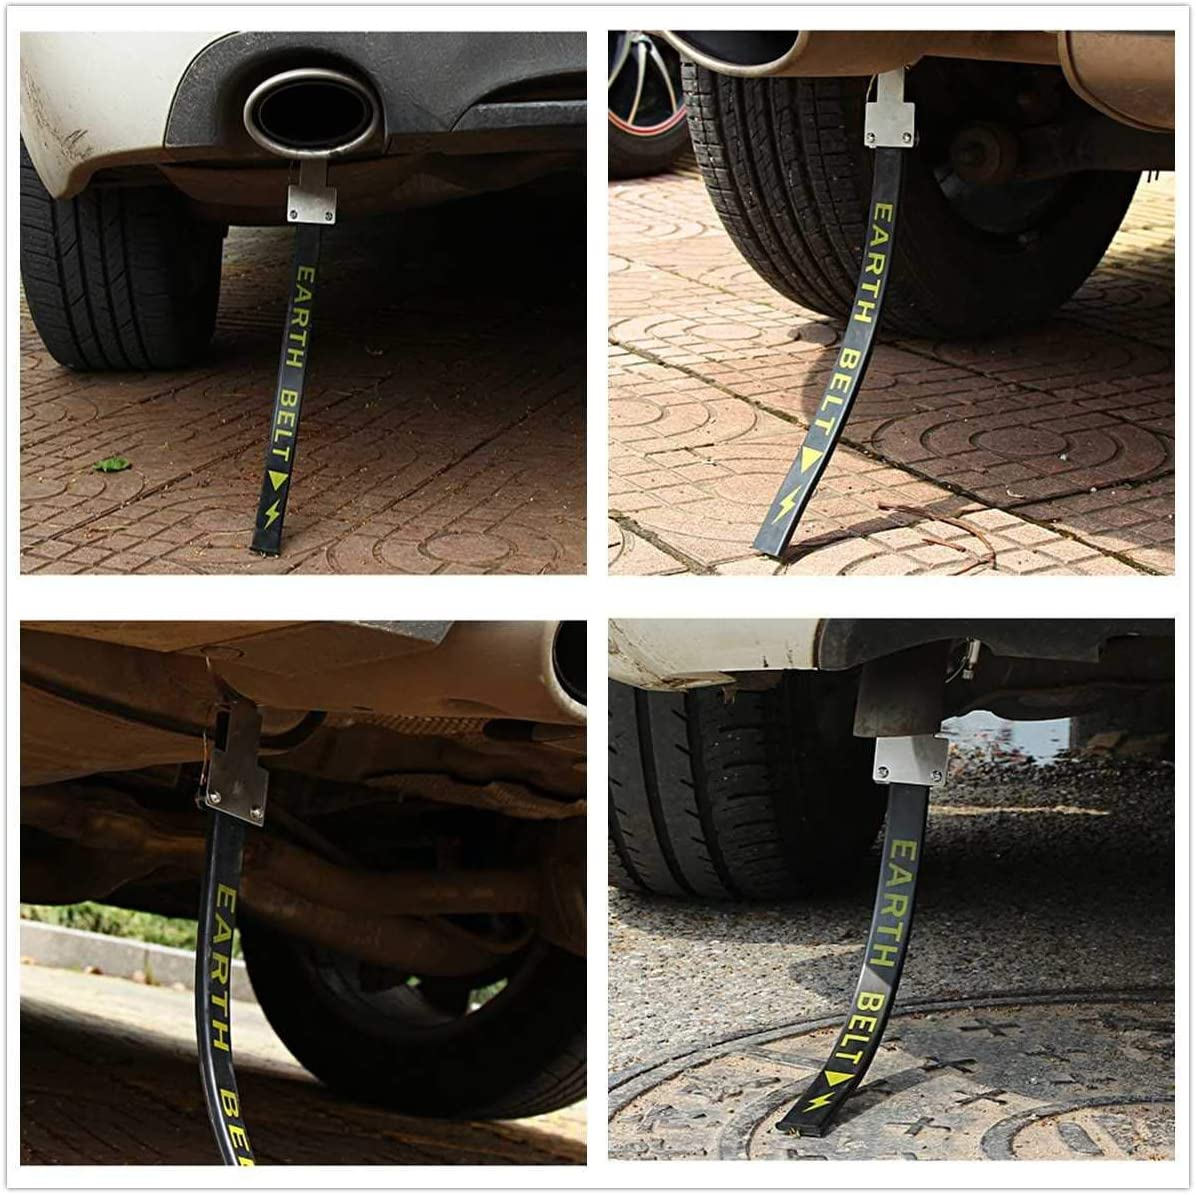 2Pcs Anti Static Belts Electrostatic Rubber Material Earth Belts for Car Vehicle SUV Safe Ground Wire Strap Safe Driving Car Accessories